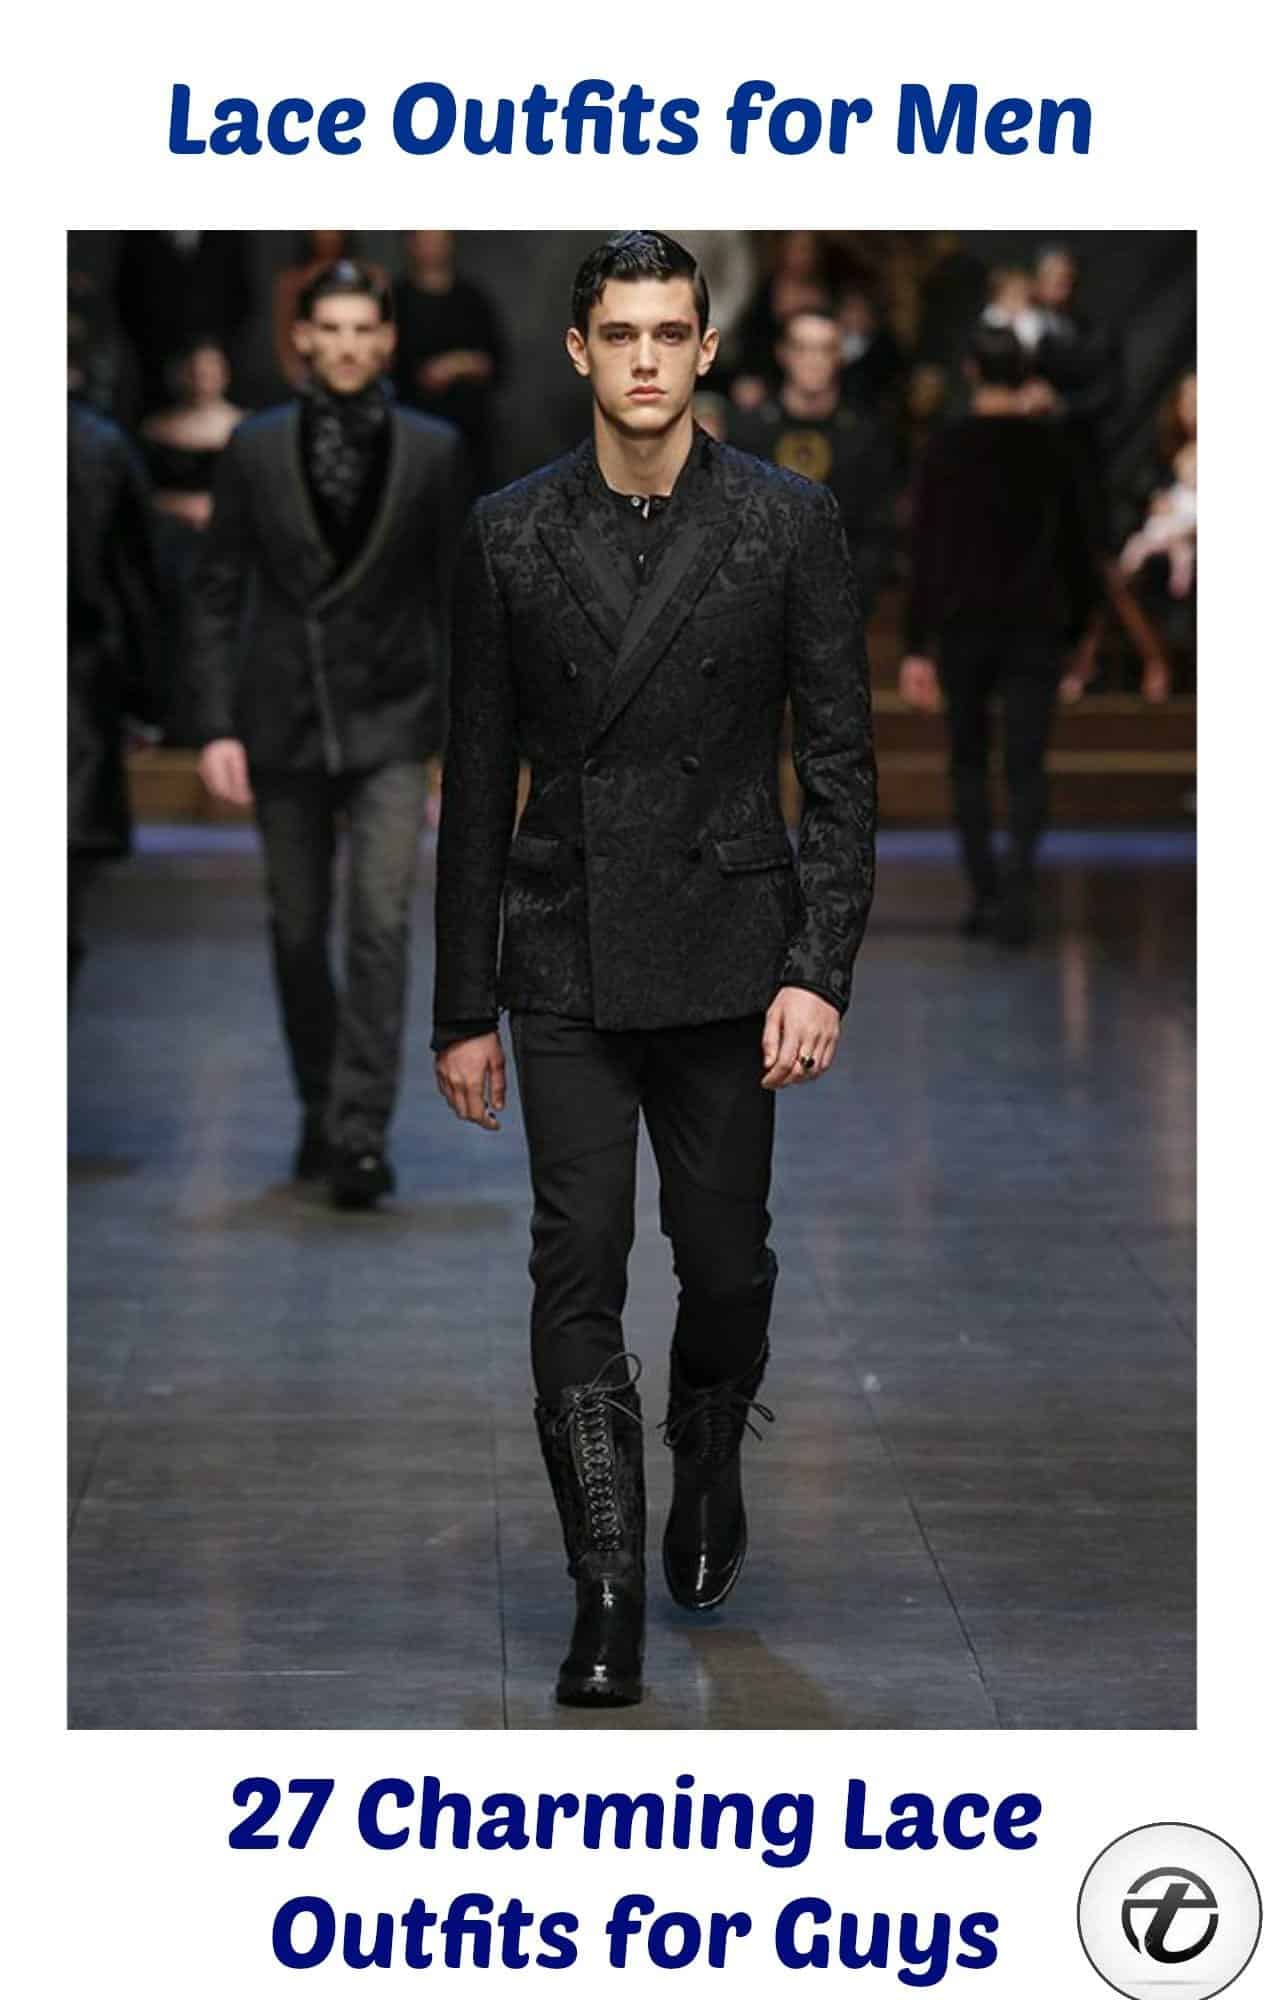 Lace Outfits For Men- 27 Best Ways To Wear Guys Lace Outfits